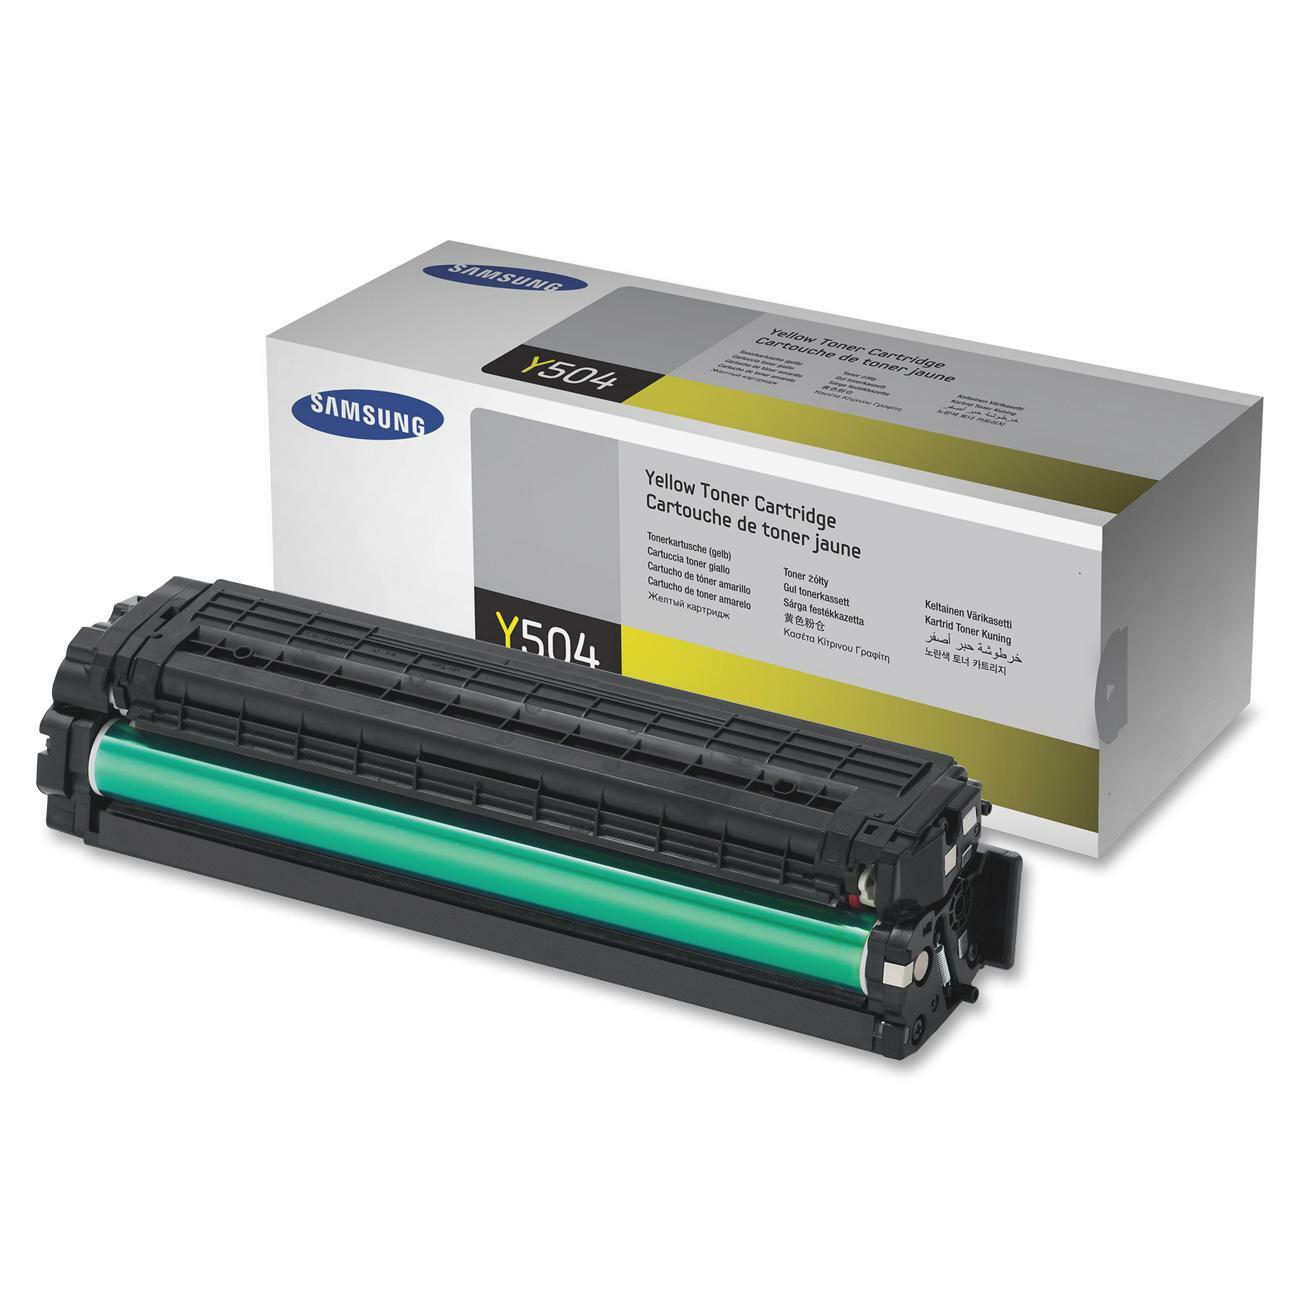 Samsung Printer Clp 415nw Waste Toner Full Clp 365w